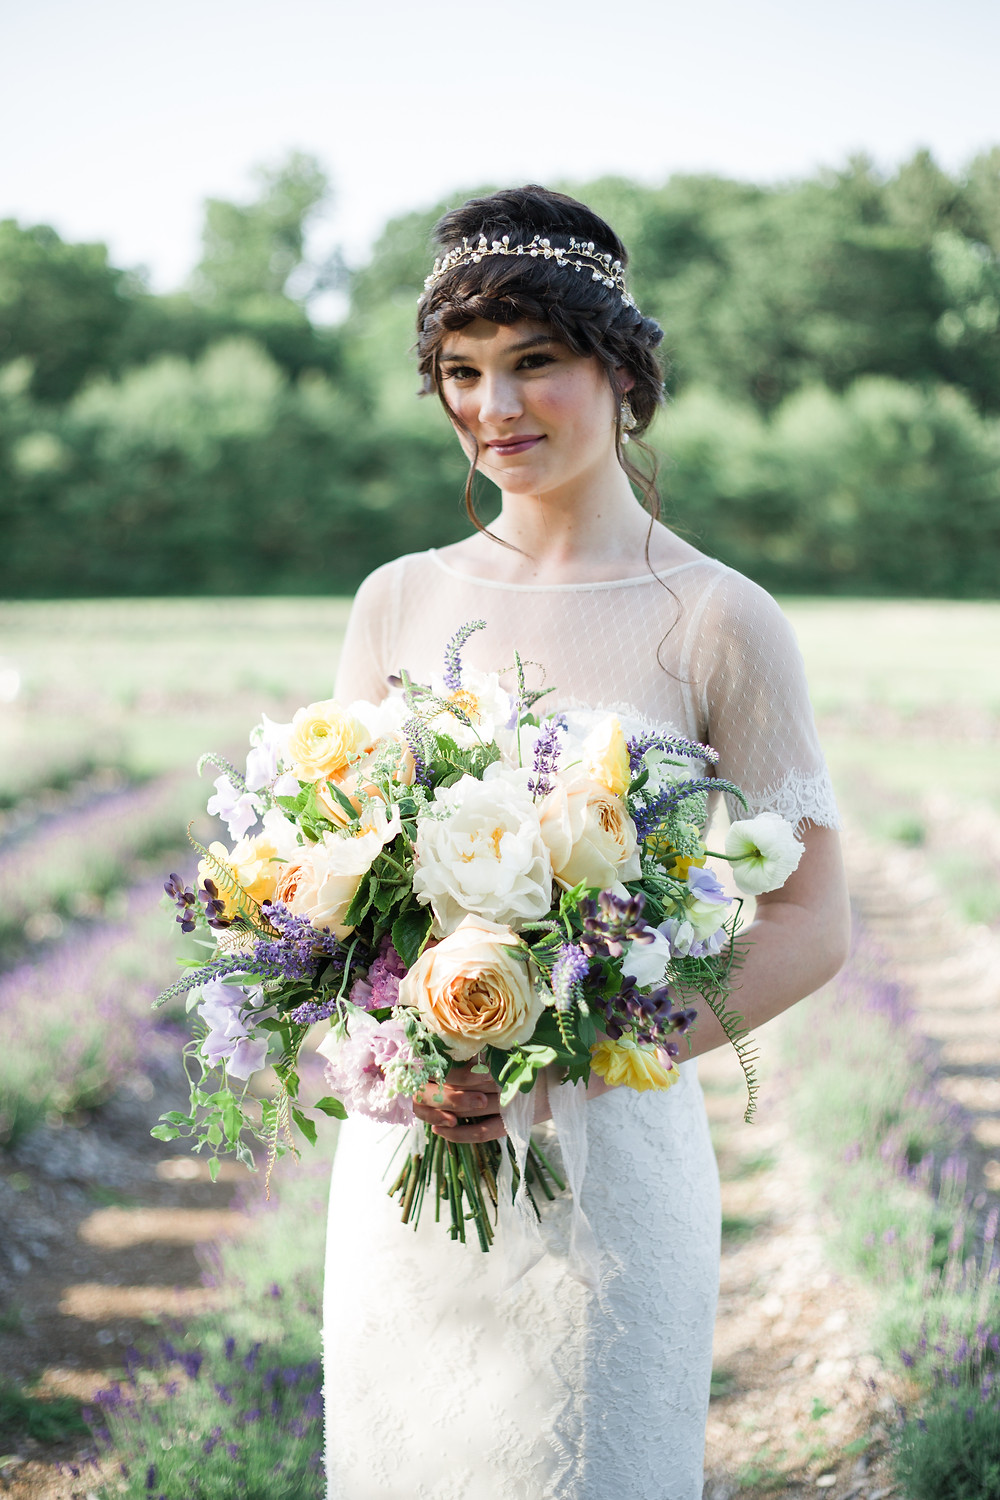 Gaden style wedding bouquet at Lavender Pond Farm